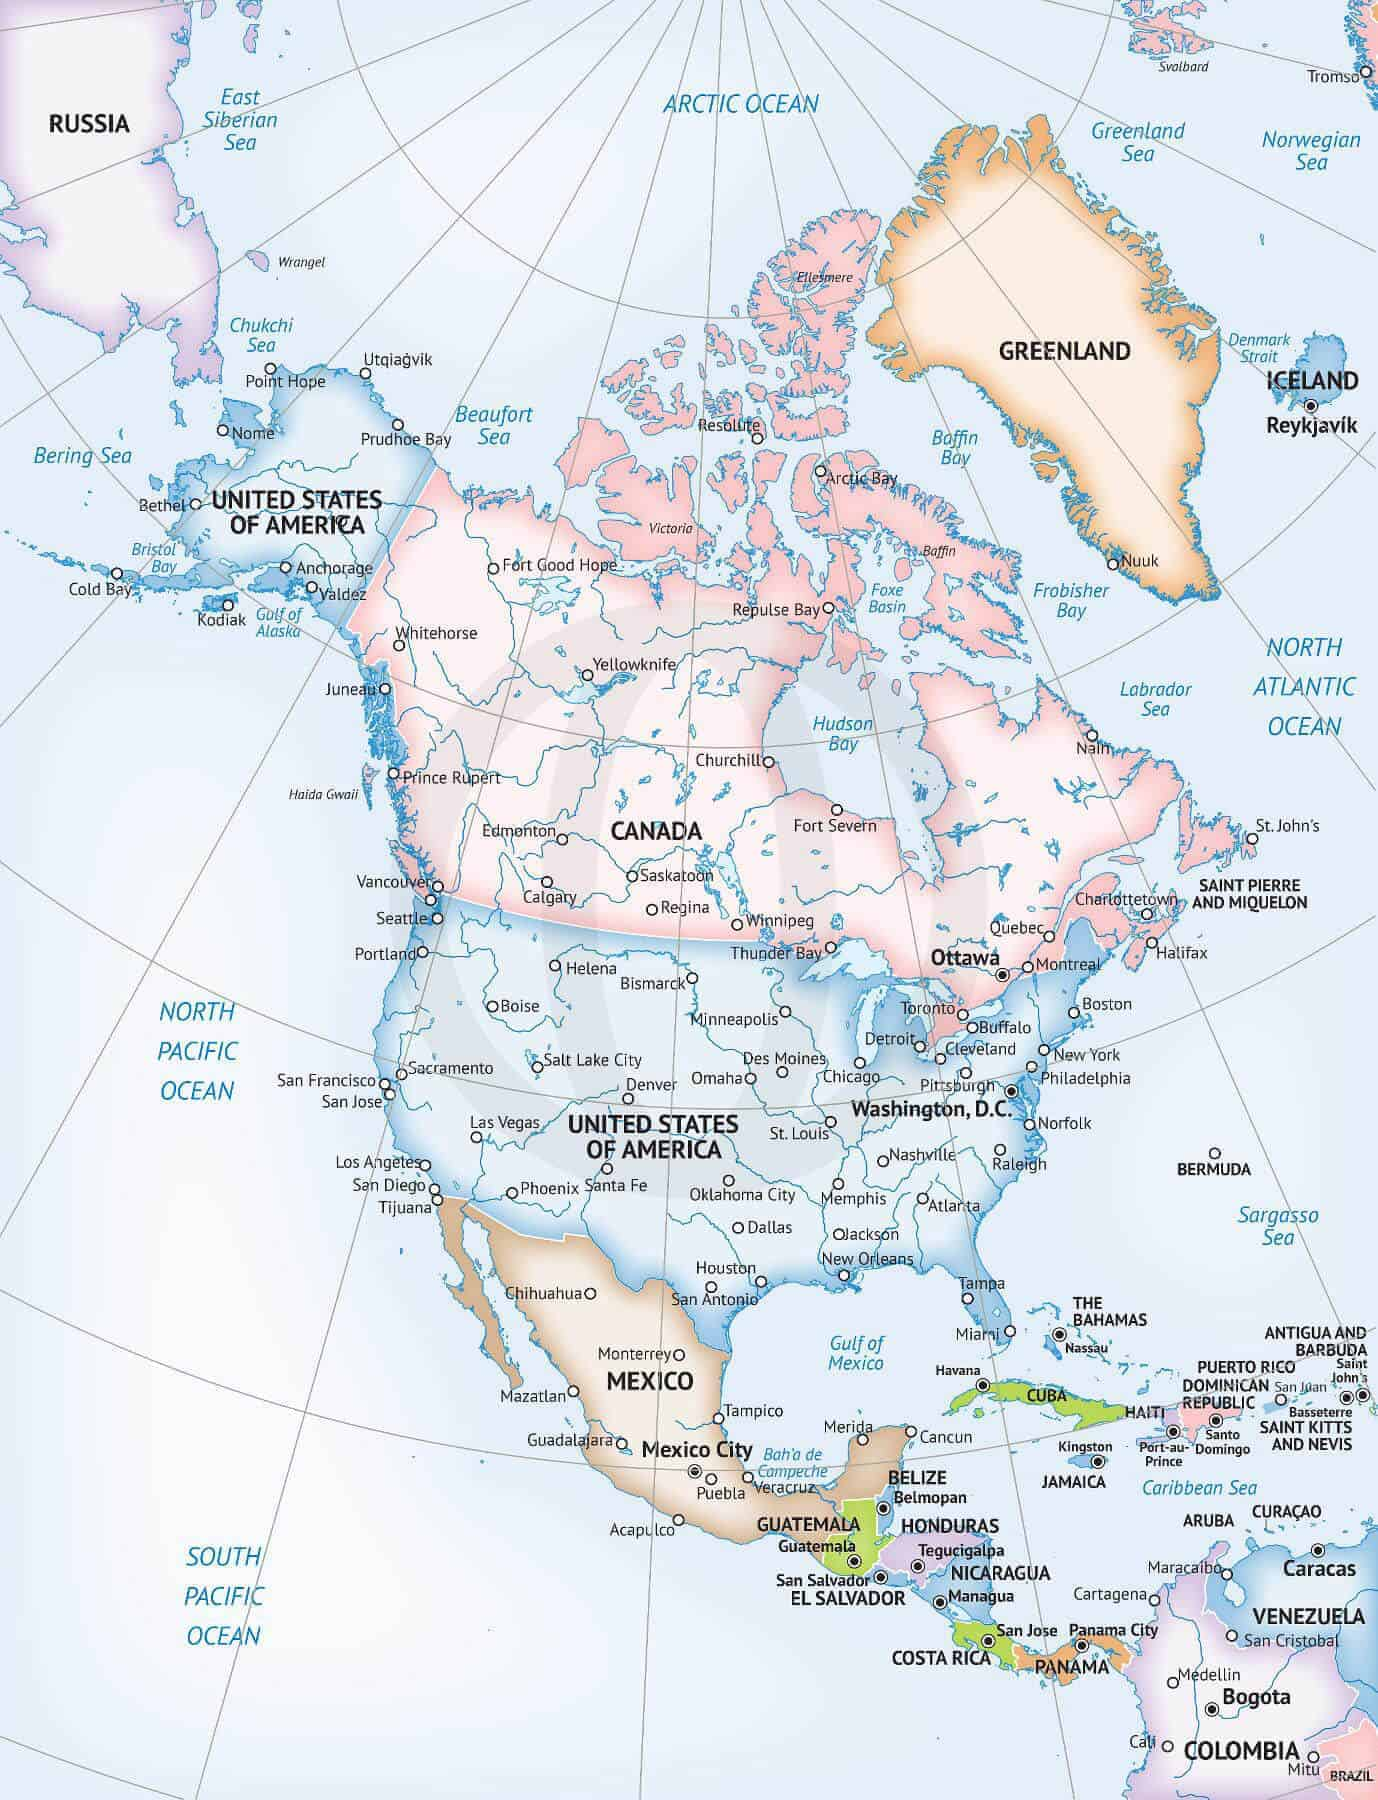 image about Map of North America Printable referred to as Map of North The united states continent Official structure